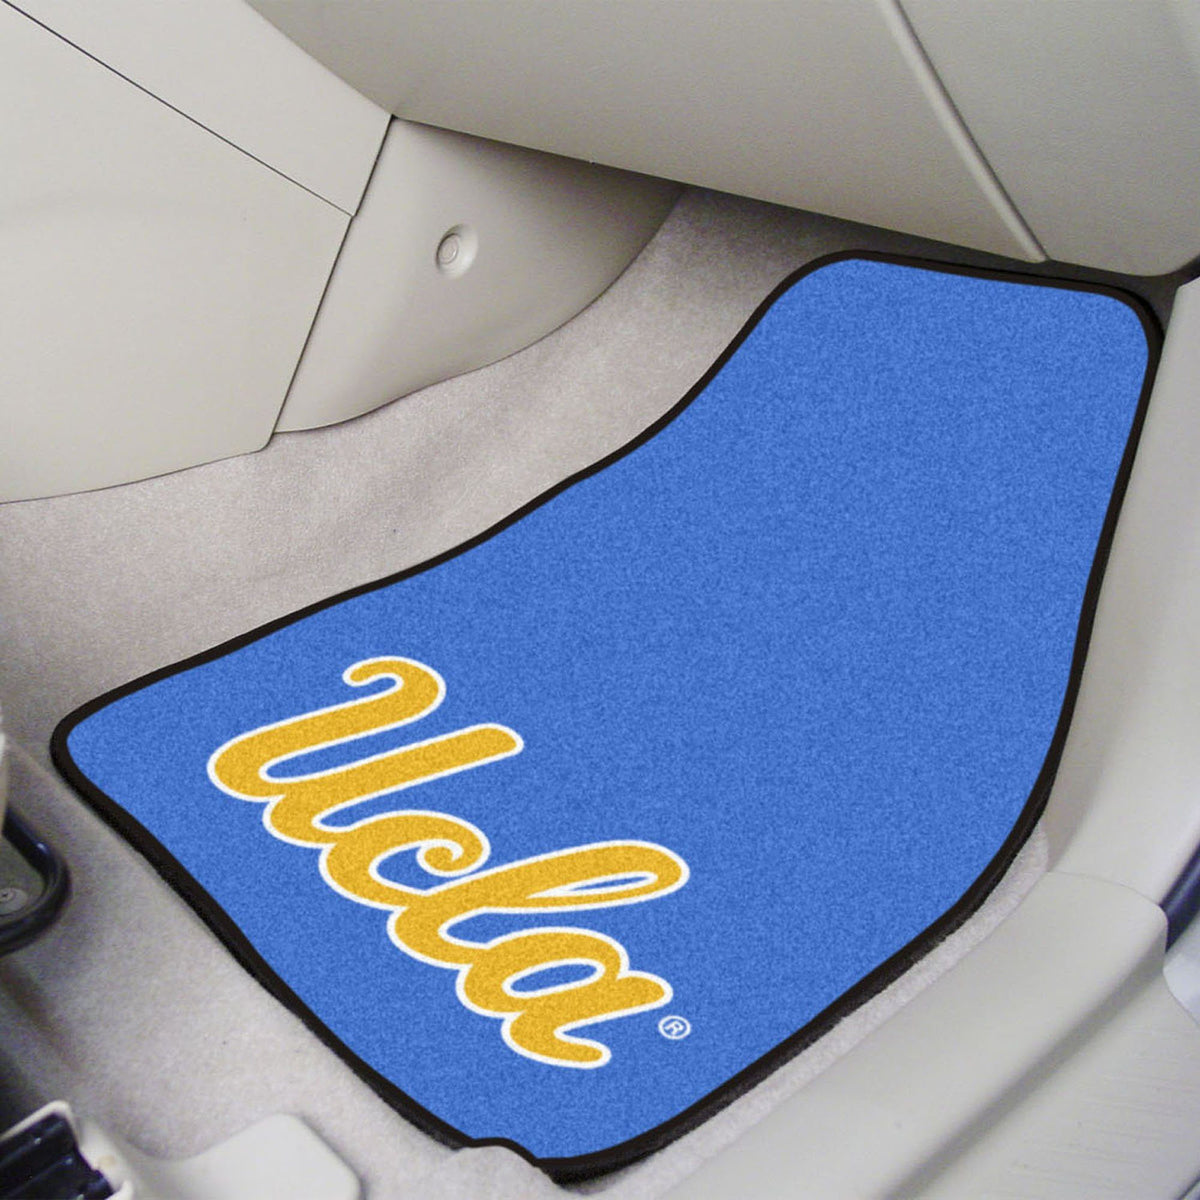 Collegiate - Carpet Car Mat, 2-Piece Set: T - Z Collegiate Car Mat, Front Car Mats, 2-pc Carpet Car Mat Set, Collegiate, Auto Fan Mats UCLA